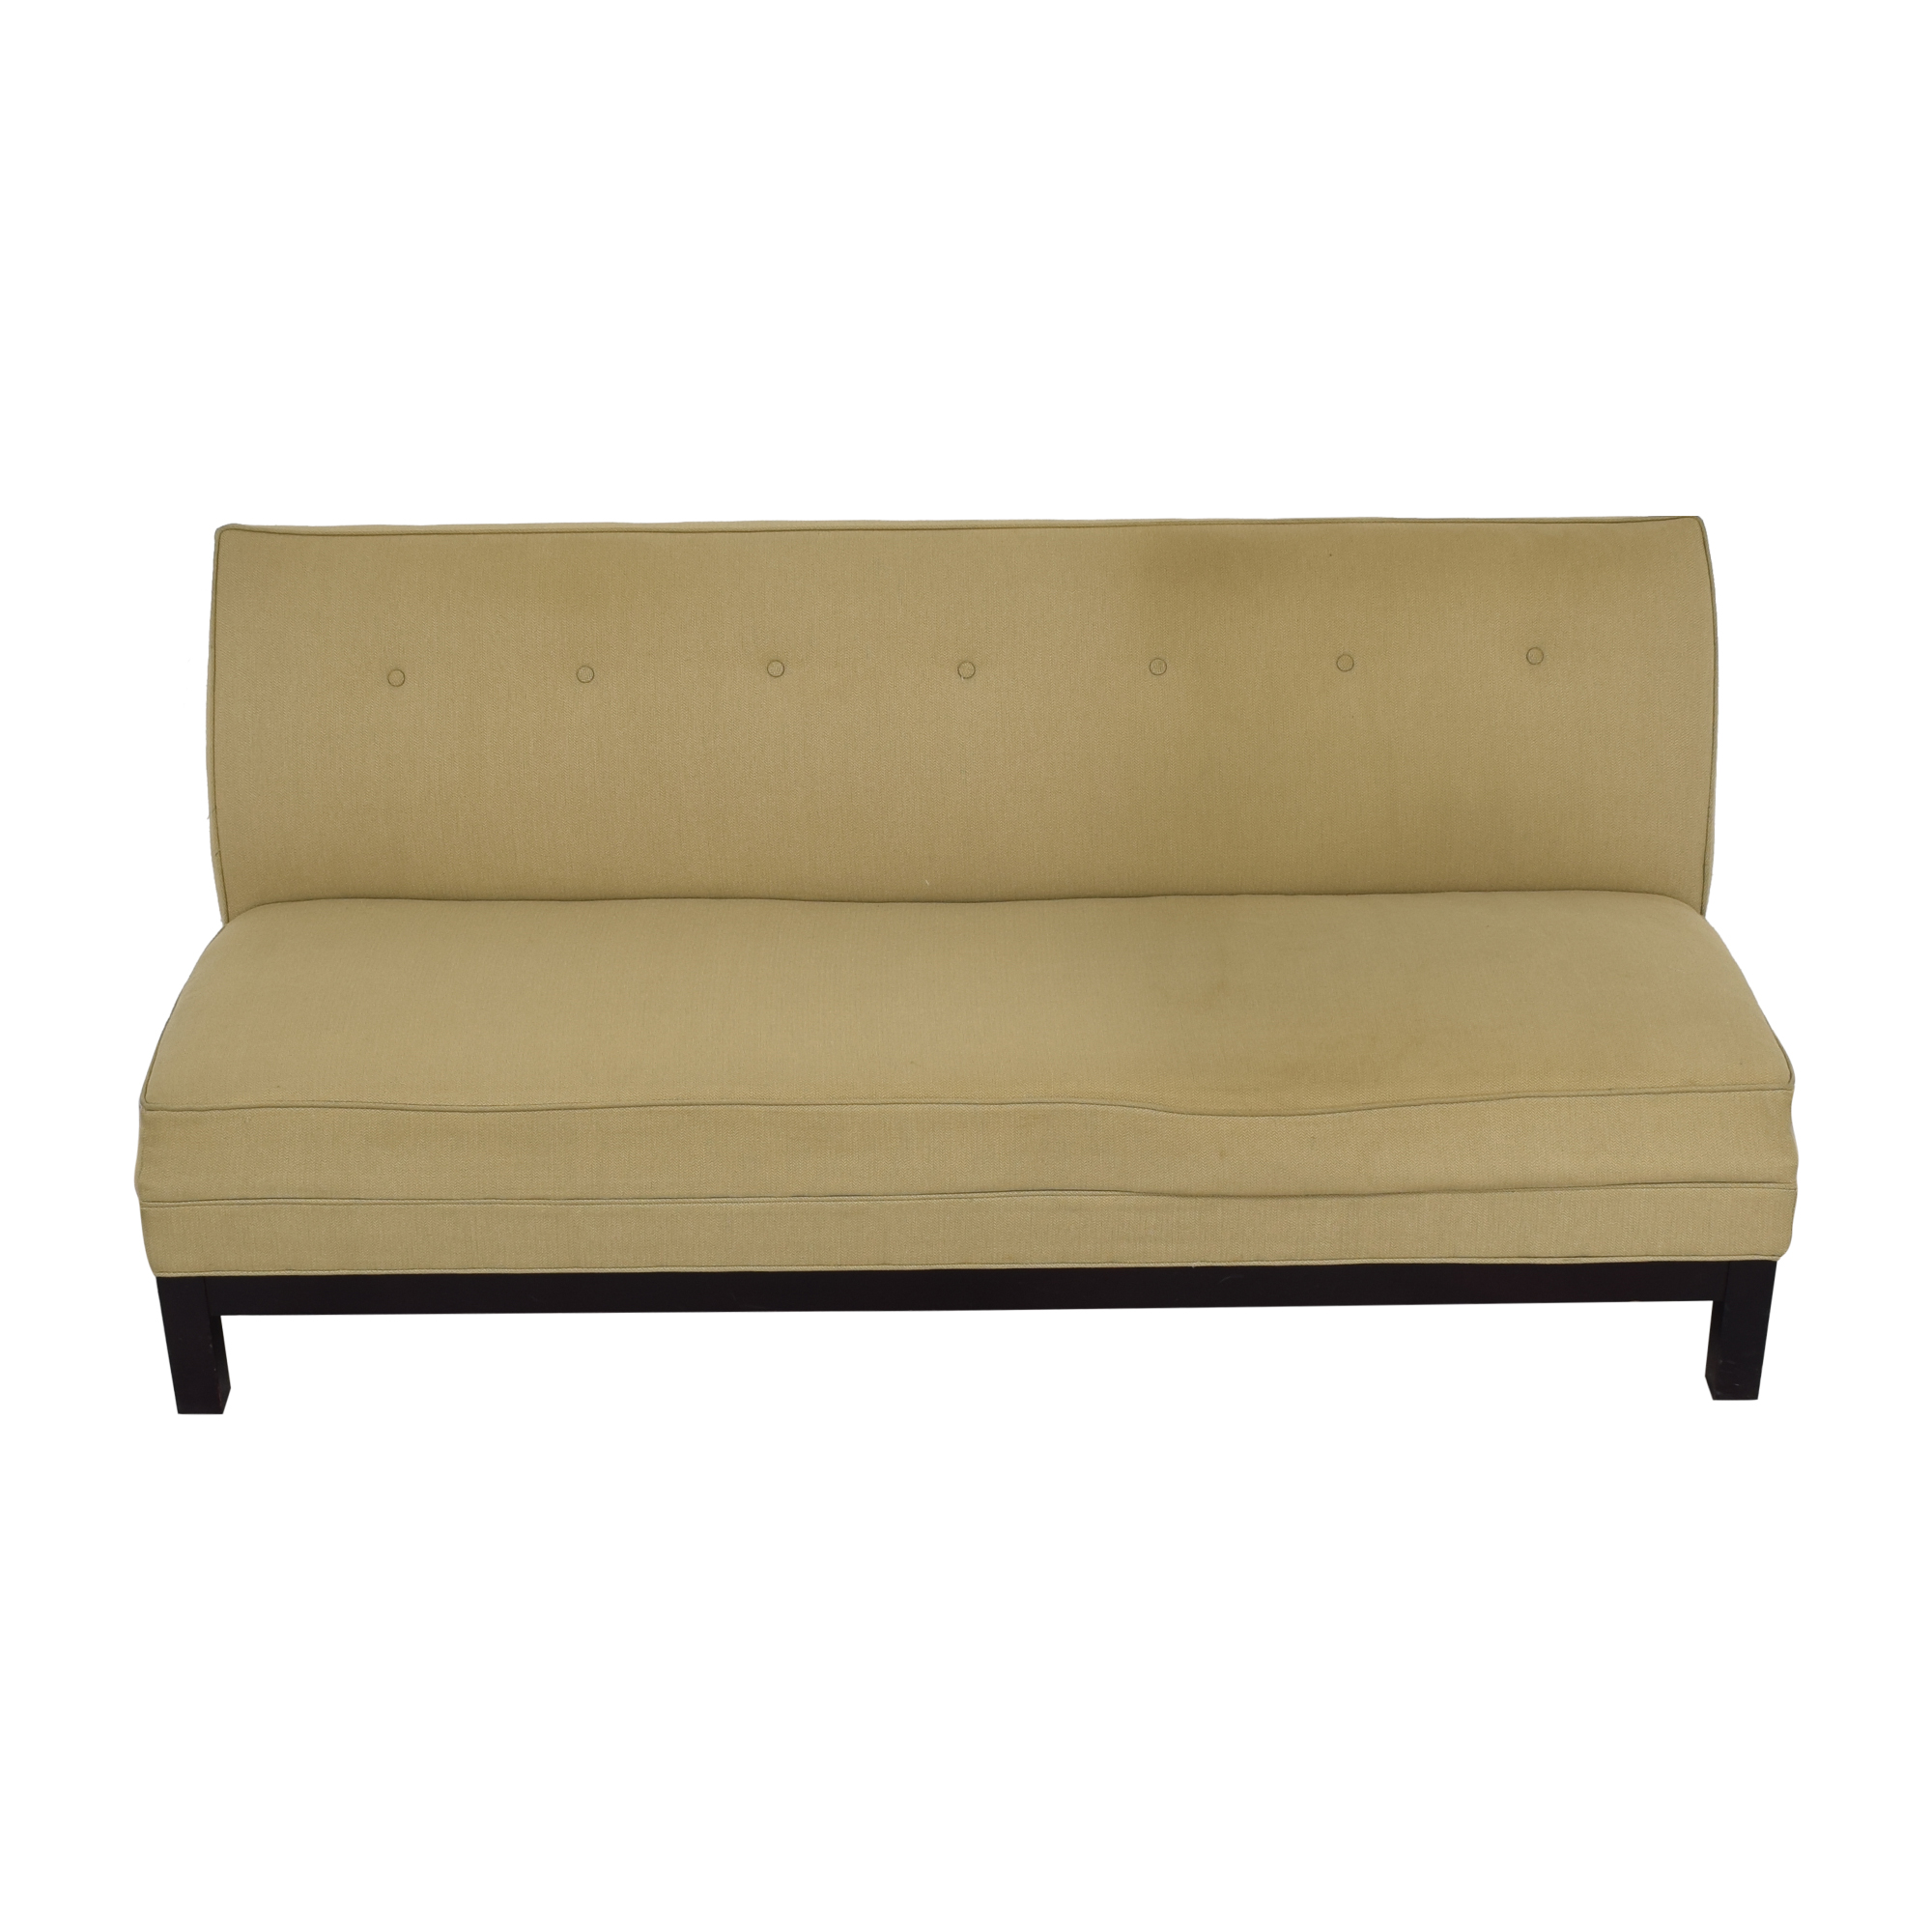 Restoration Hardware Restoration Hardware by Mitchell Gold Sofa and Ottoman beige